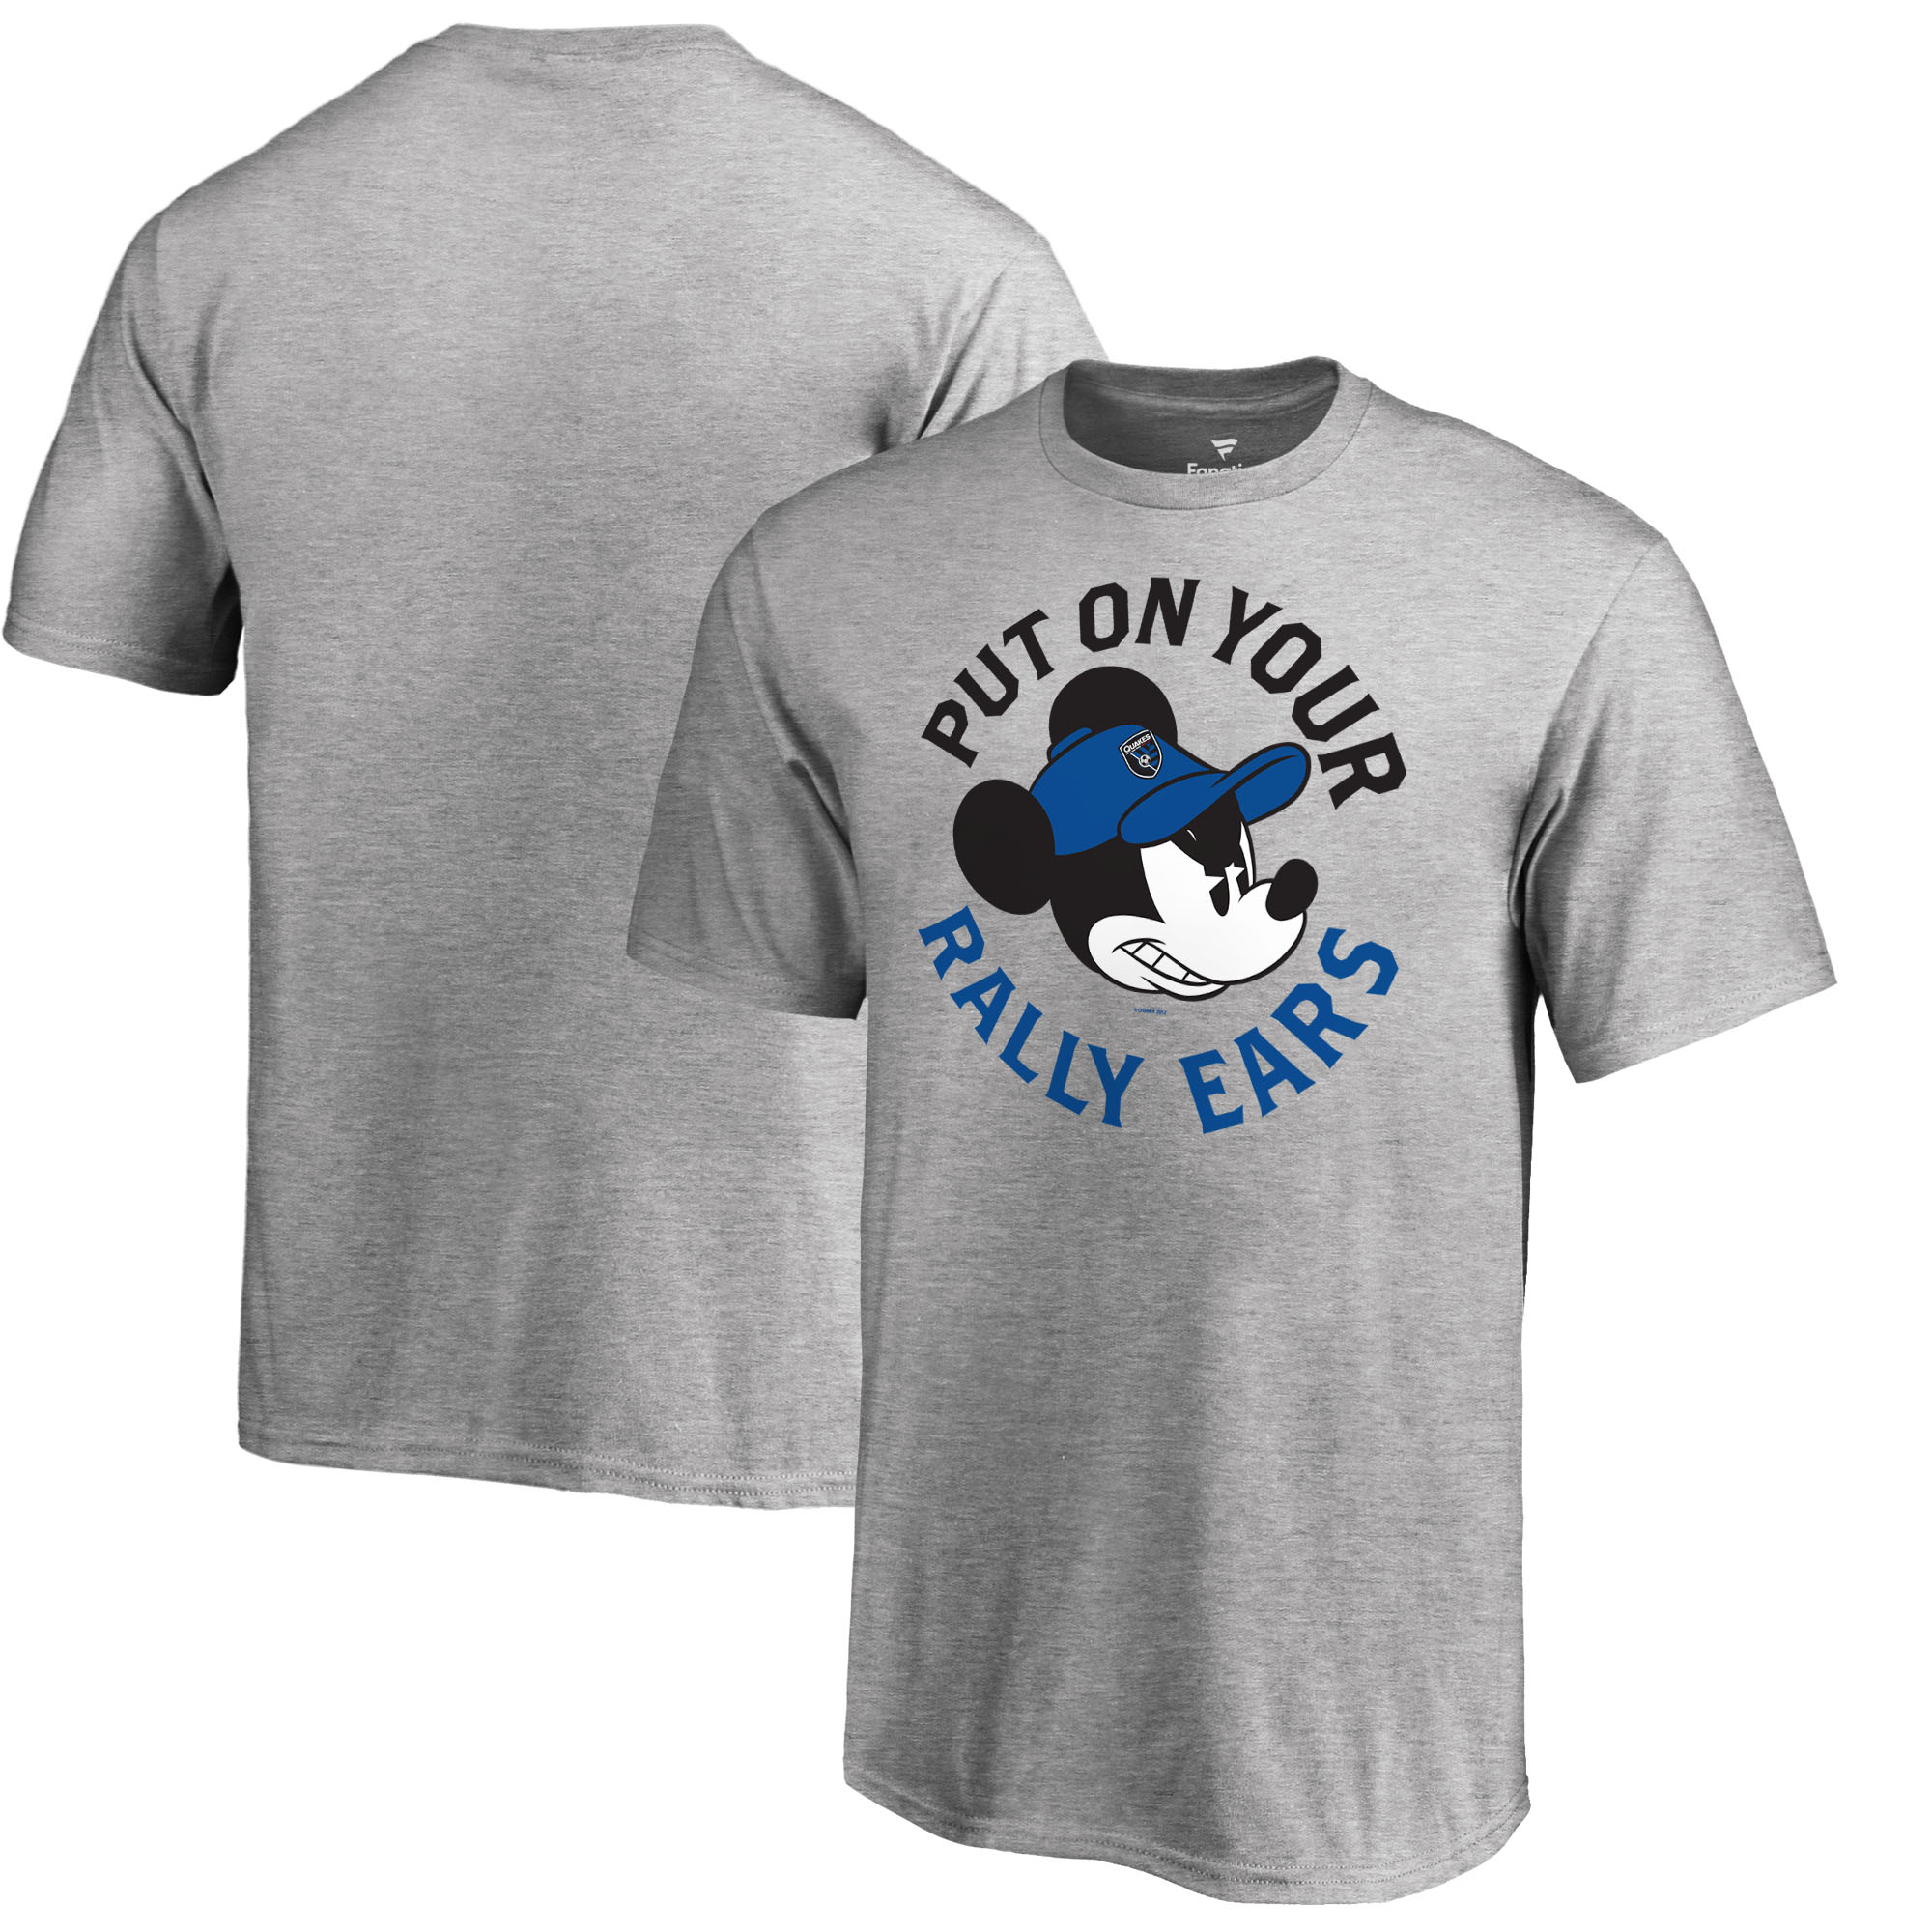 San Jose Earthquakes Fanatics Branded Youth Disney Rally Ears T-Shirt - Heathered Gray